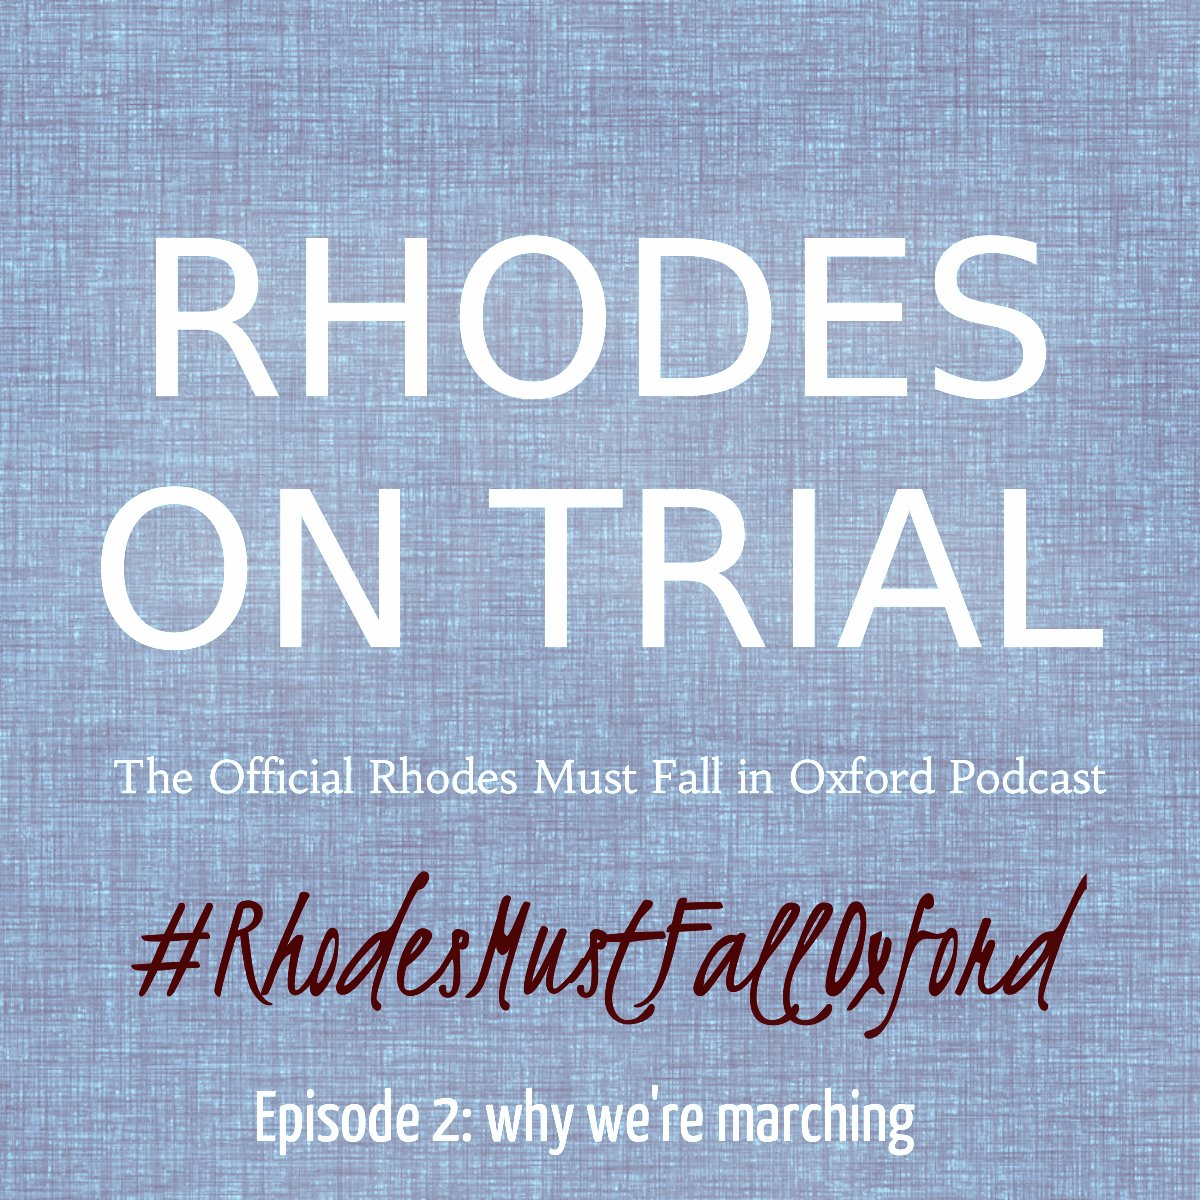 PODCAST: Why We're Marching Tomorrow in Oxford | https://t.co/x8CKp79bVk #RhodesMustFall #MarchOnRhodes https://t.co/83P8MzCrur